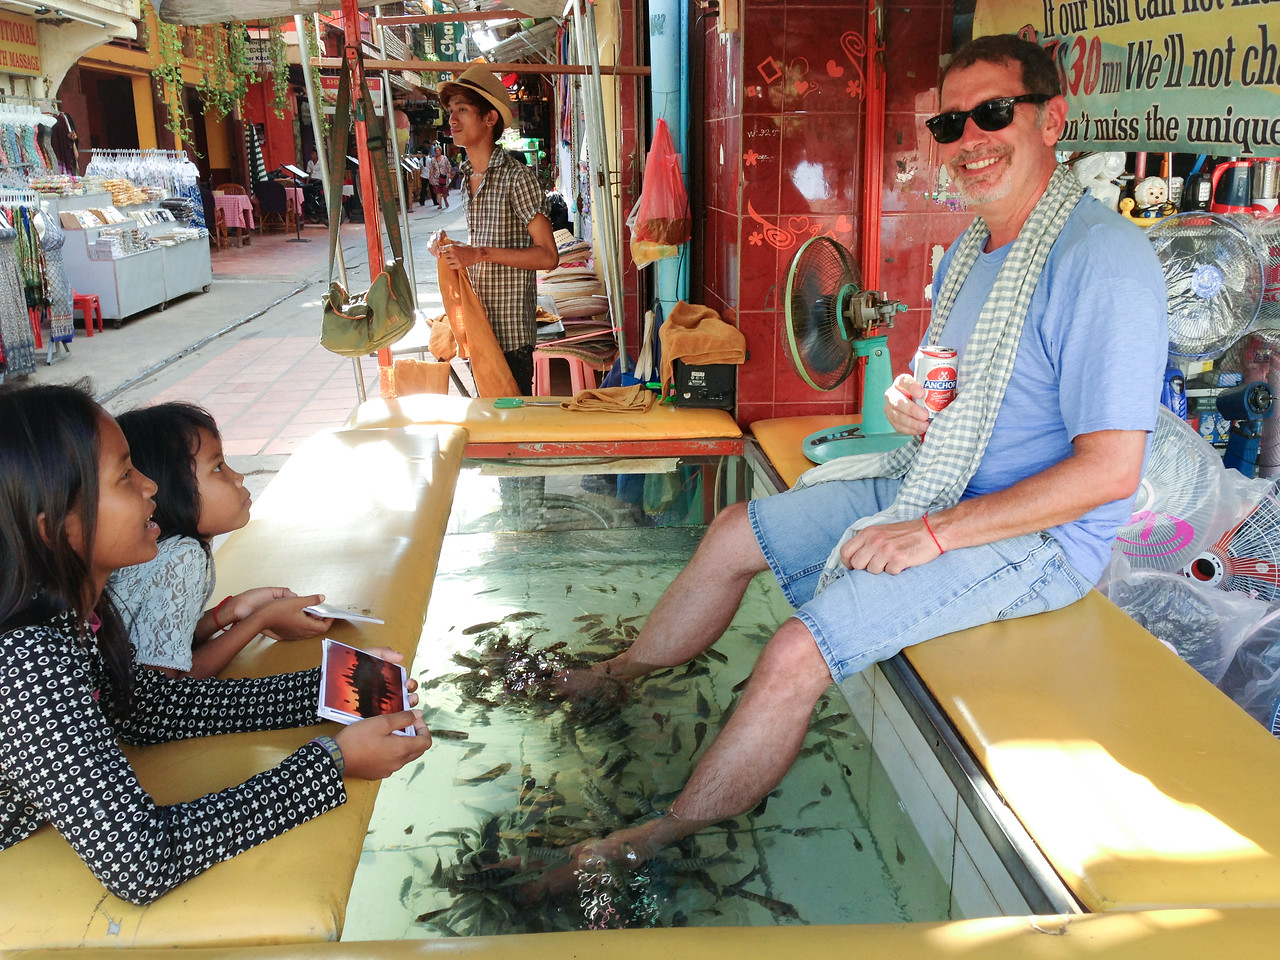 Fish Pedicure in Siem Reap, Cambodia